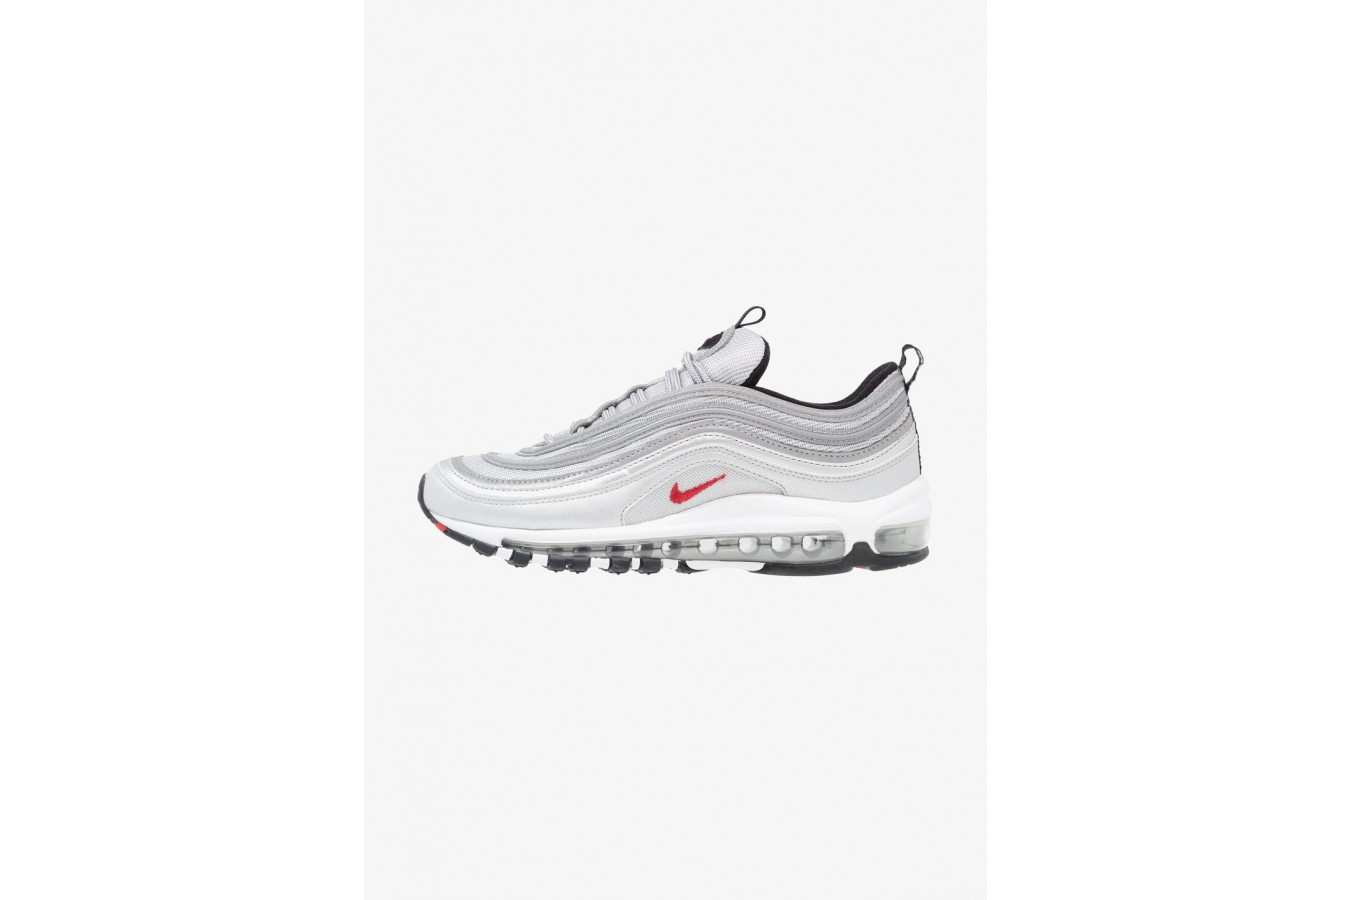 Vente chaude Nike AIR MAX 97 QS (GS) Baskets basses black